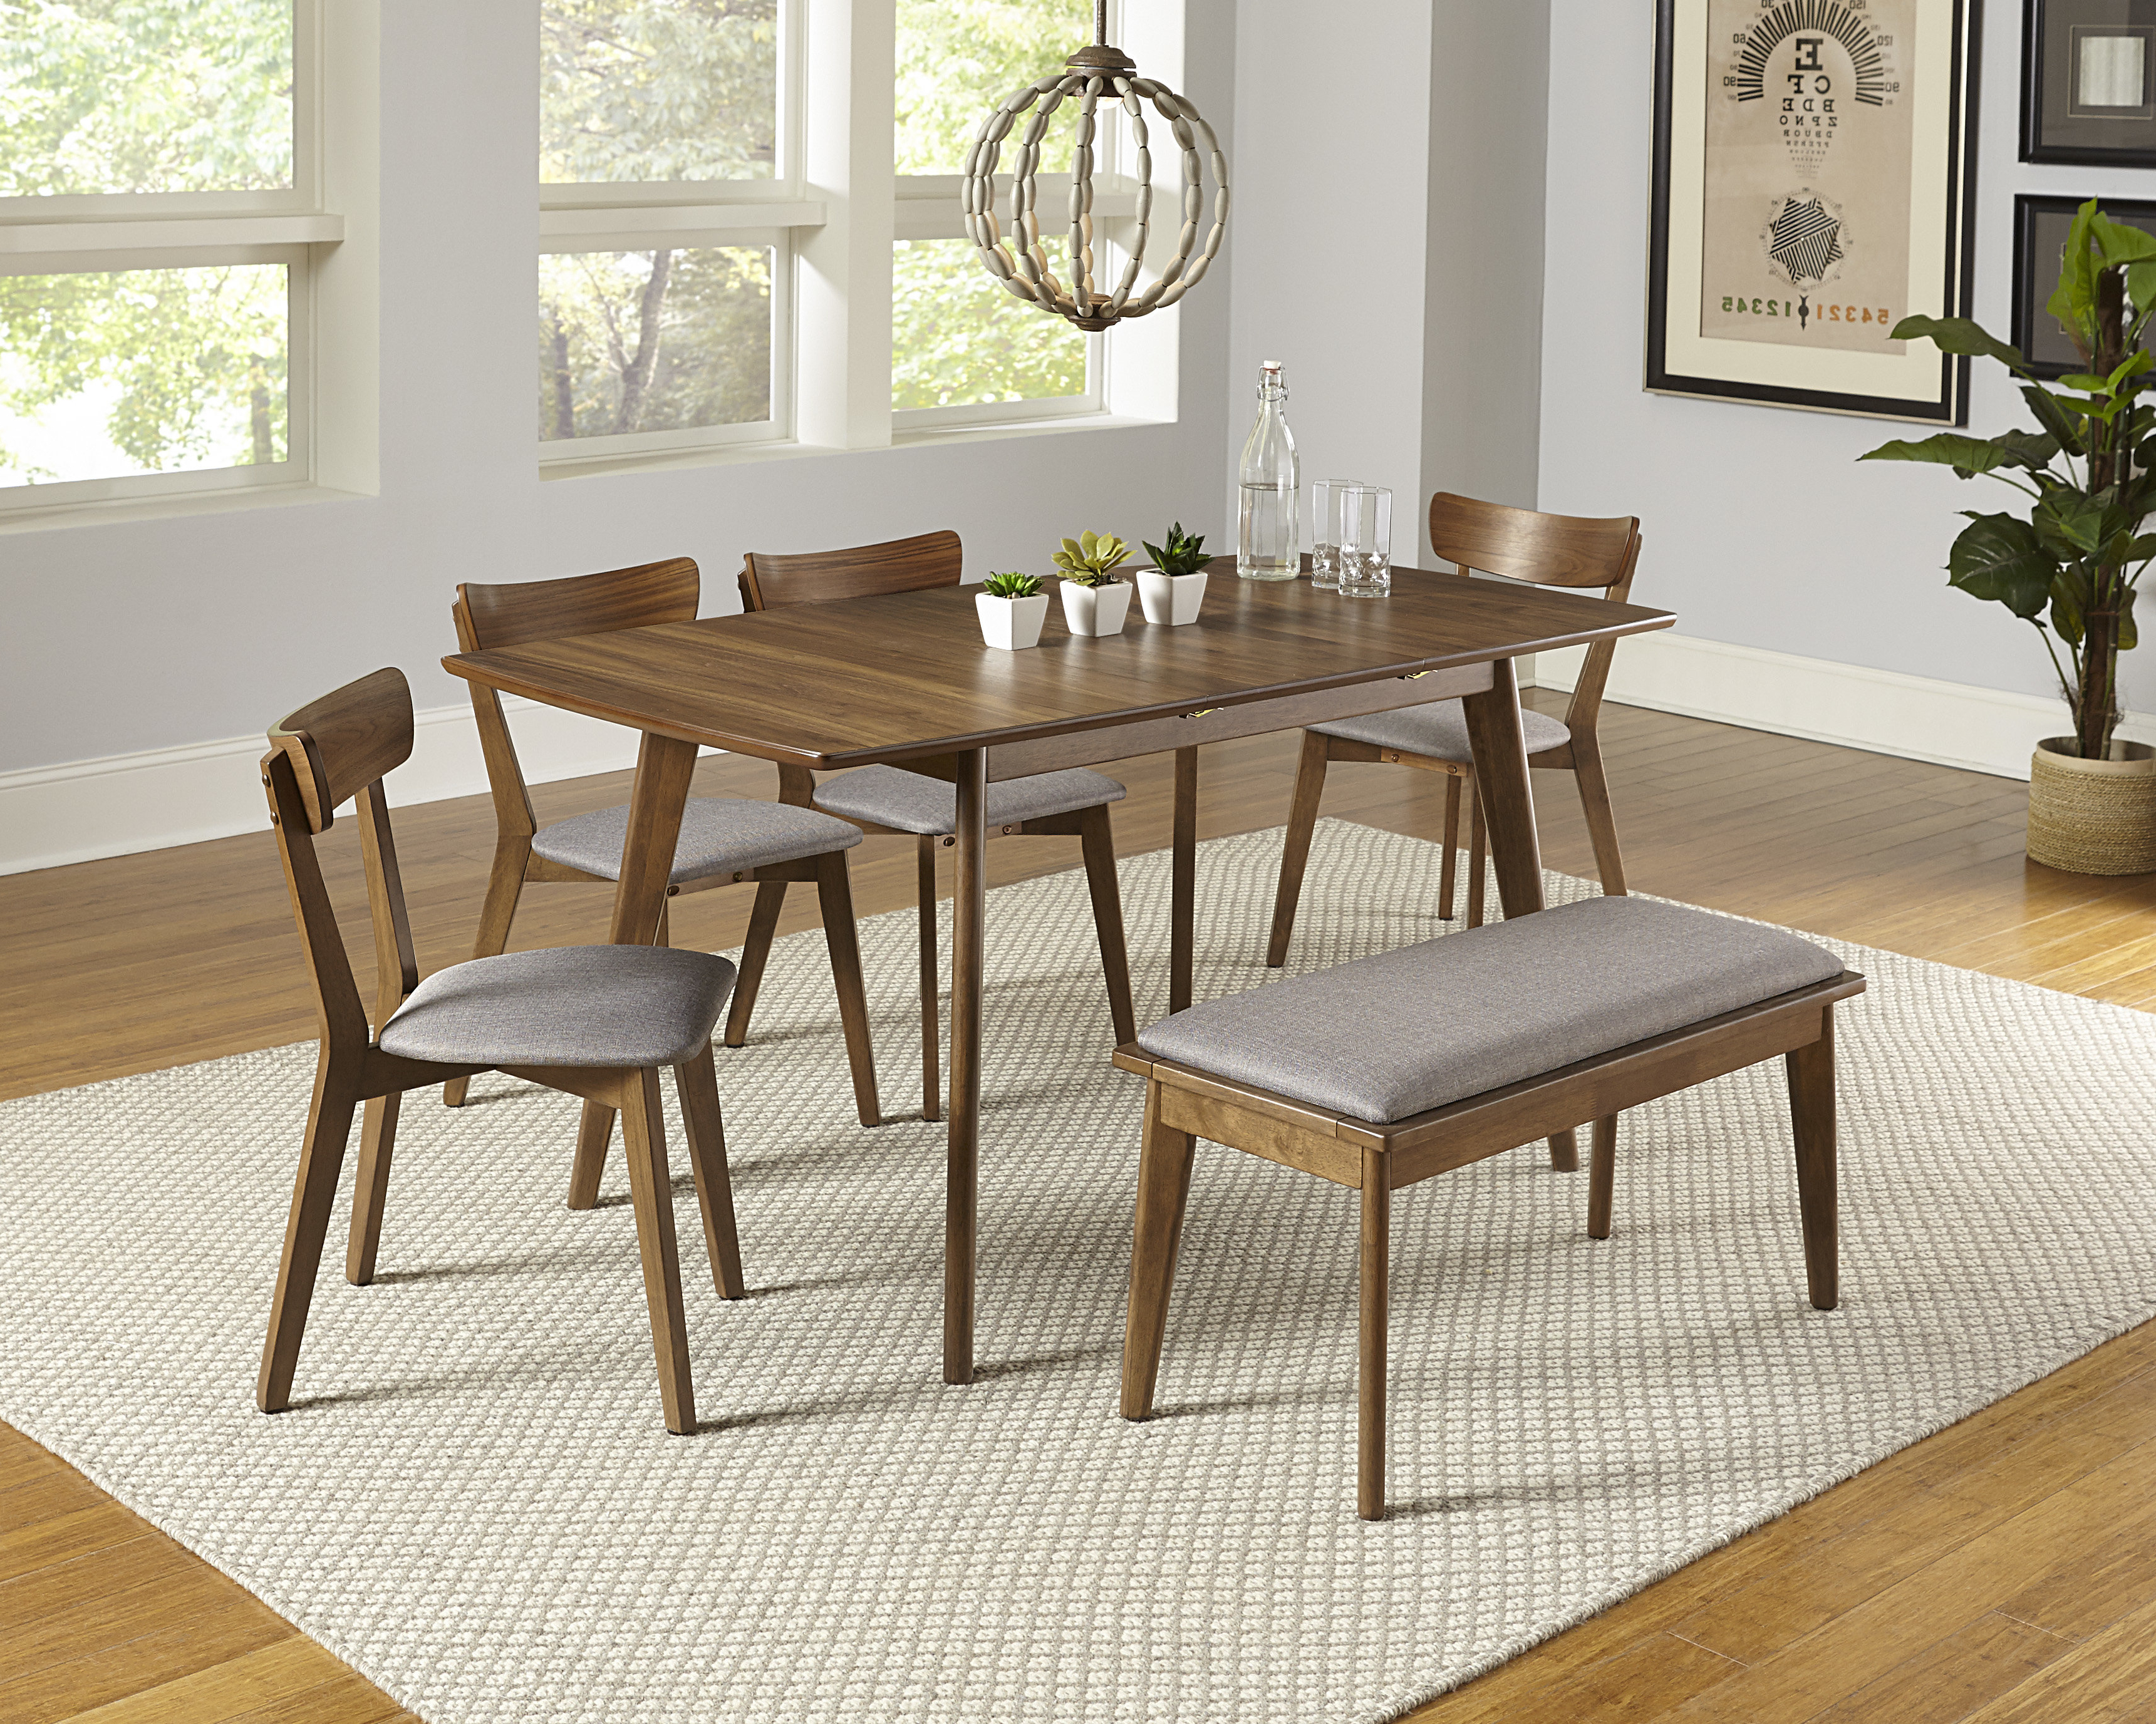 Bungalow Rose Rockaway 6 Piece Extendable Solid Wood Dining Set Regarding Well Liked Kerley 4 Piece Dining Sets (View 3 of 25)